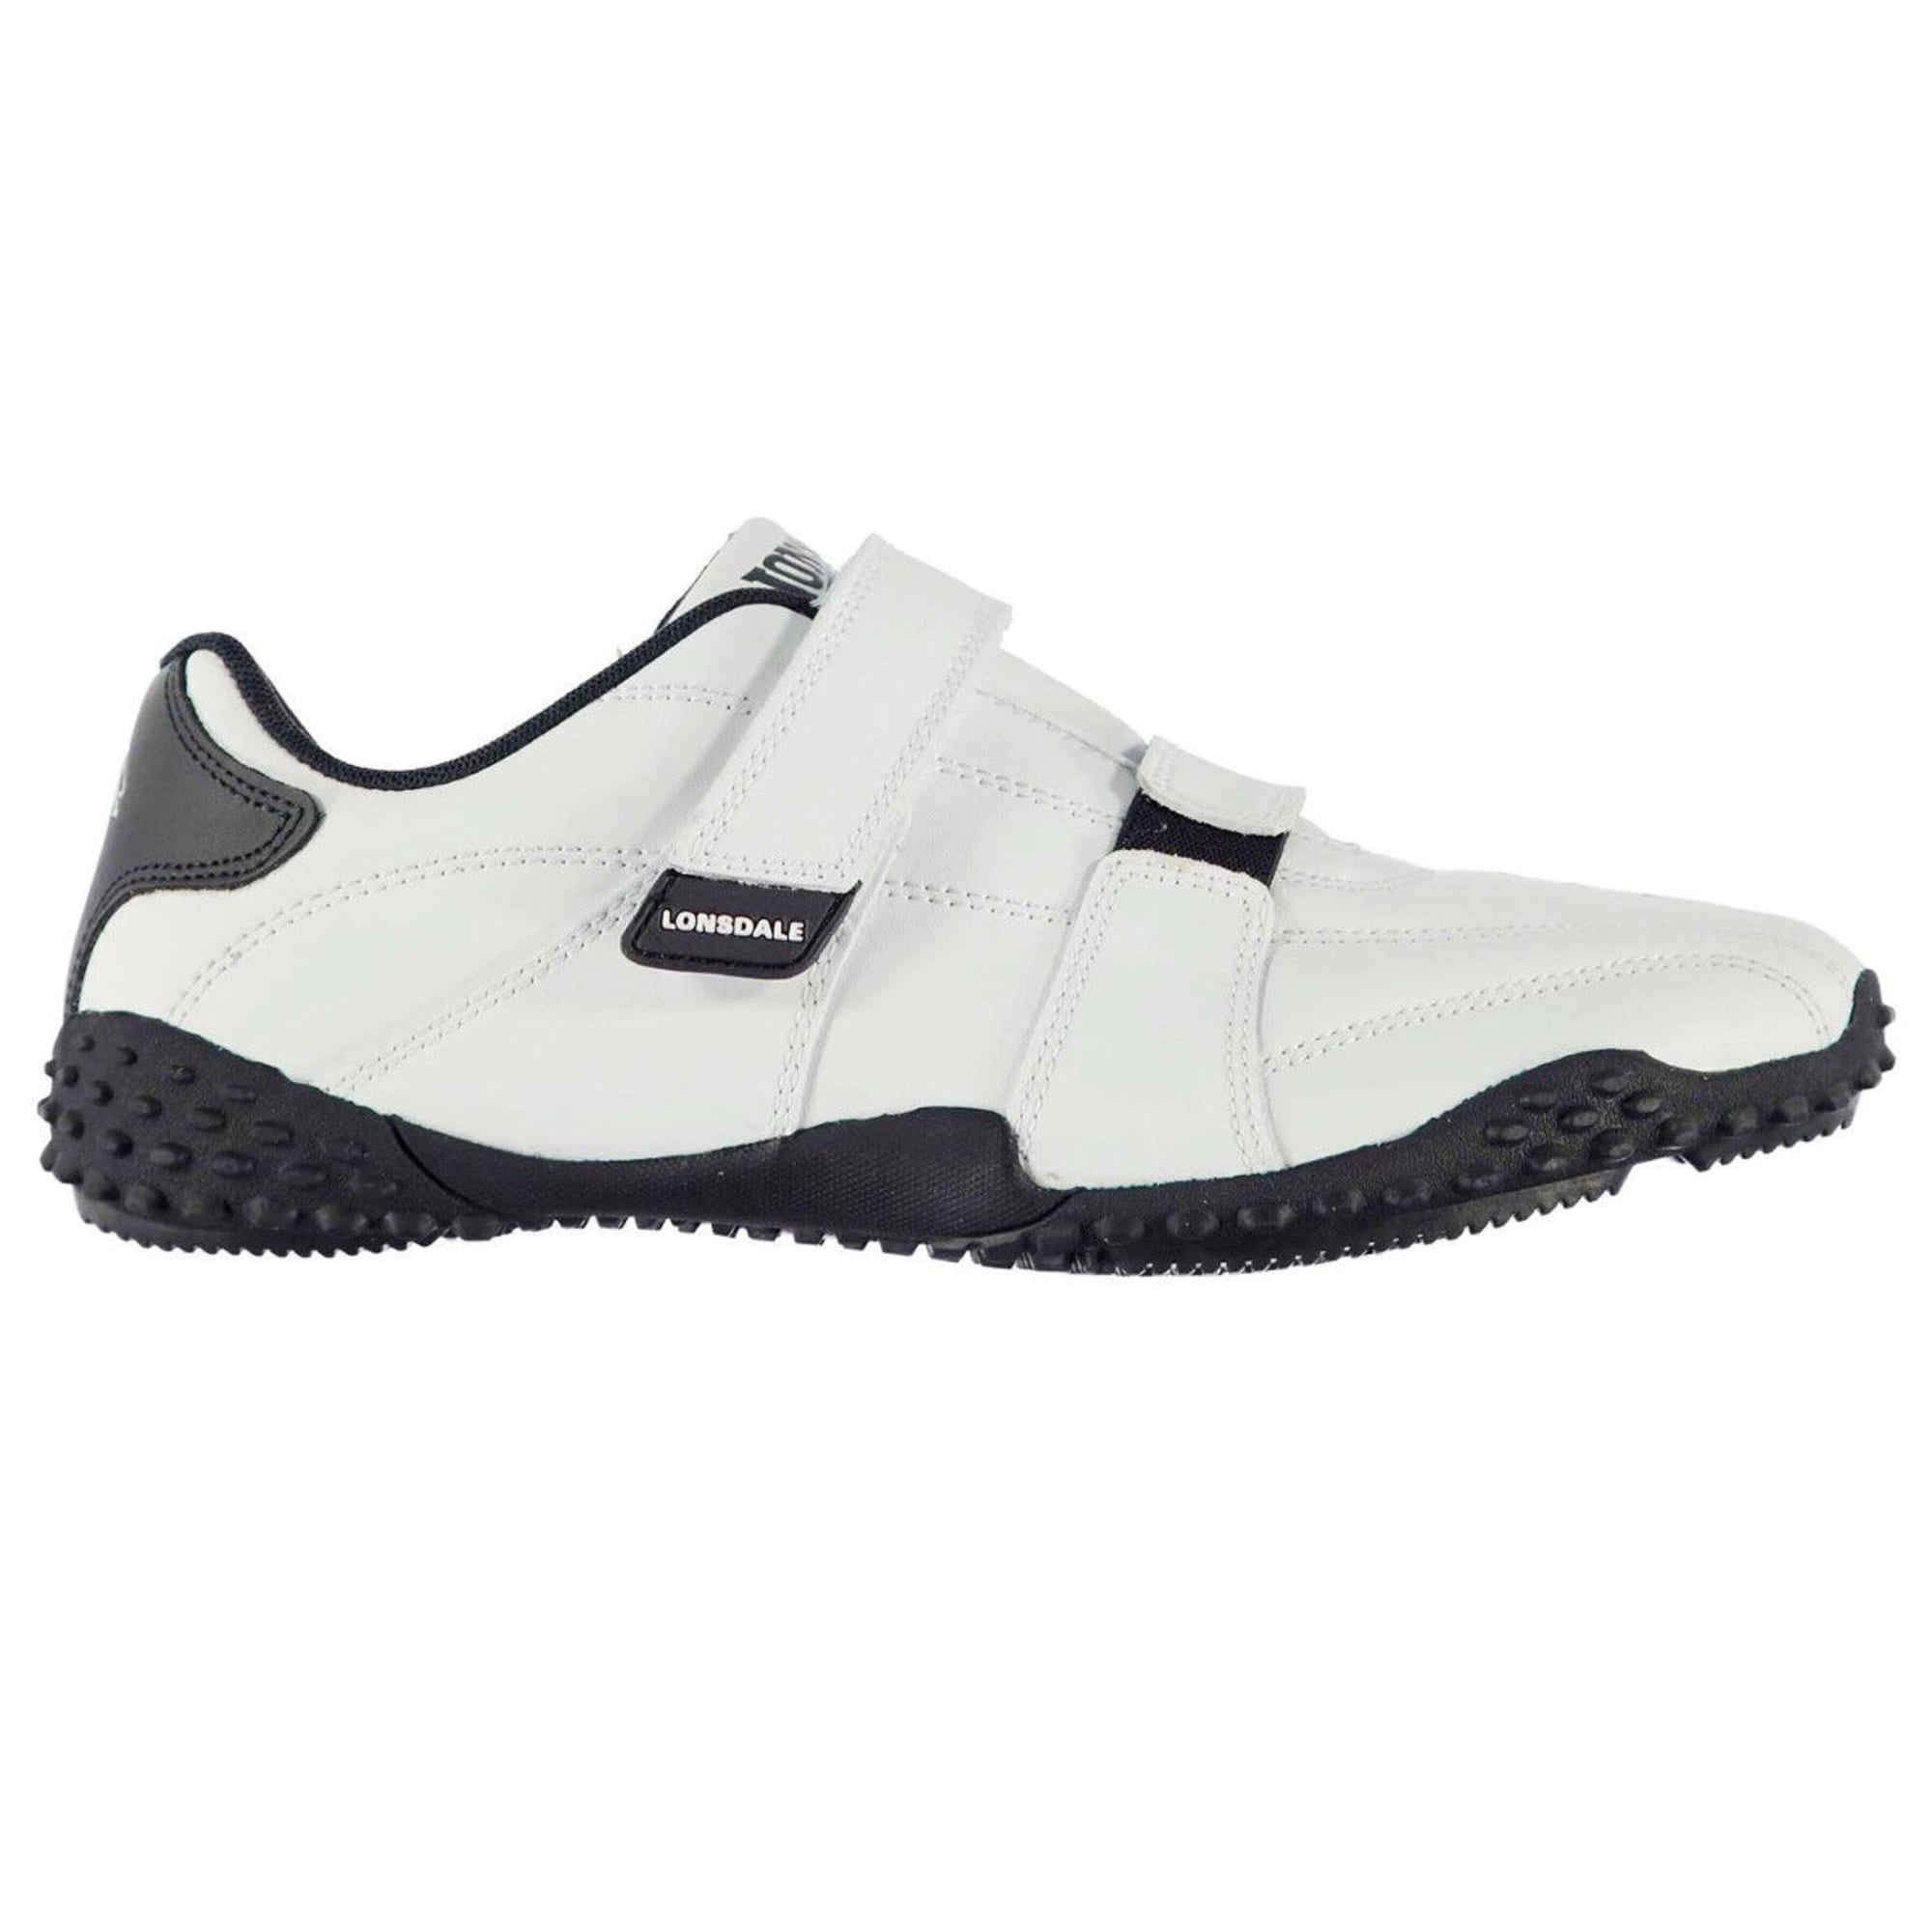 LONSDALE FULHAM LEATHER VEL TRAINER JUNIOR SHOES SNEAKER RUNNING WALKING CASUAL